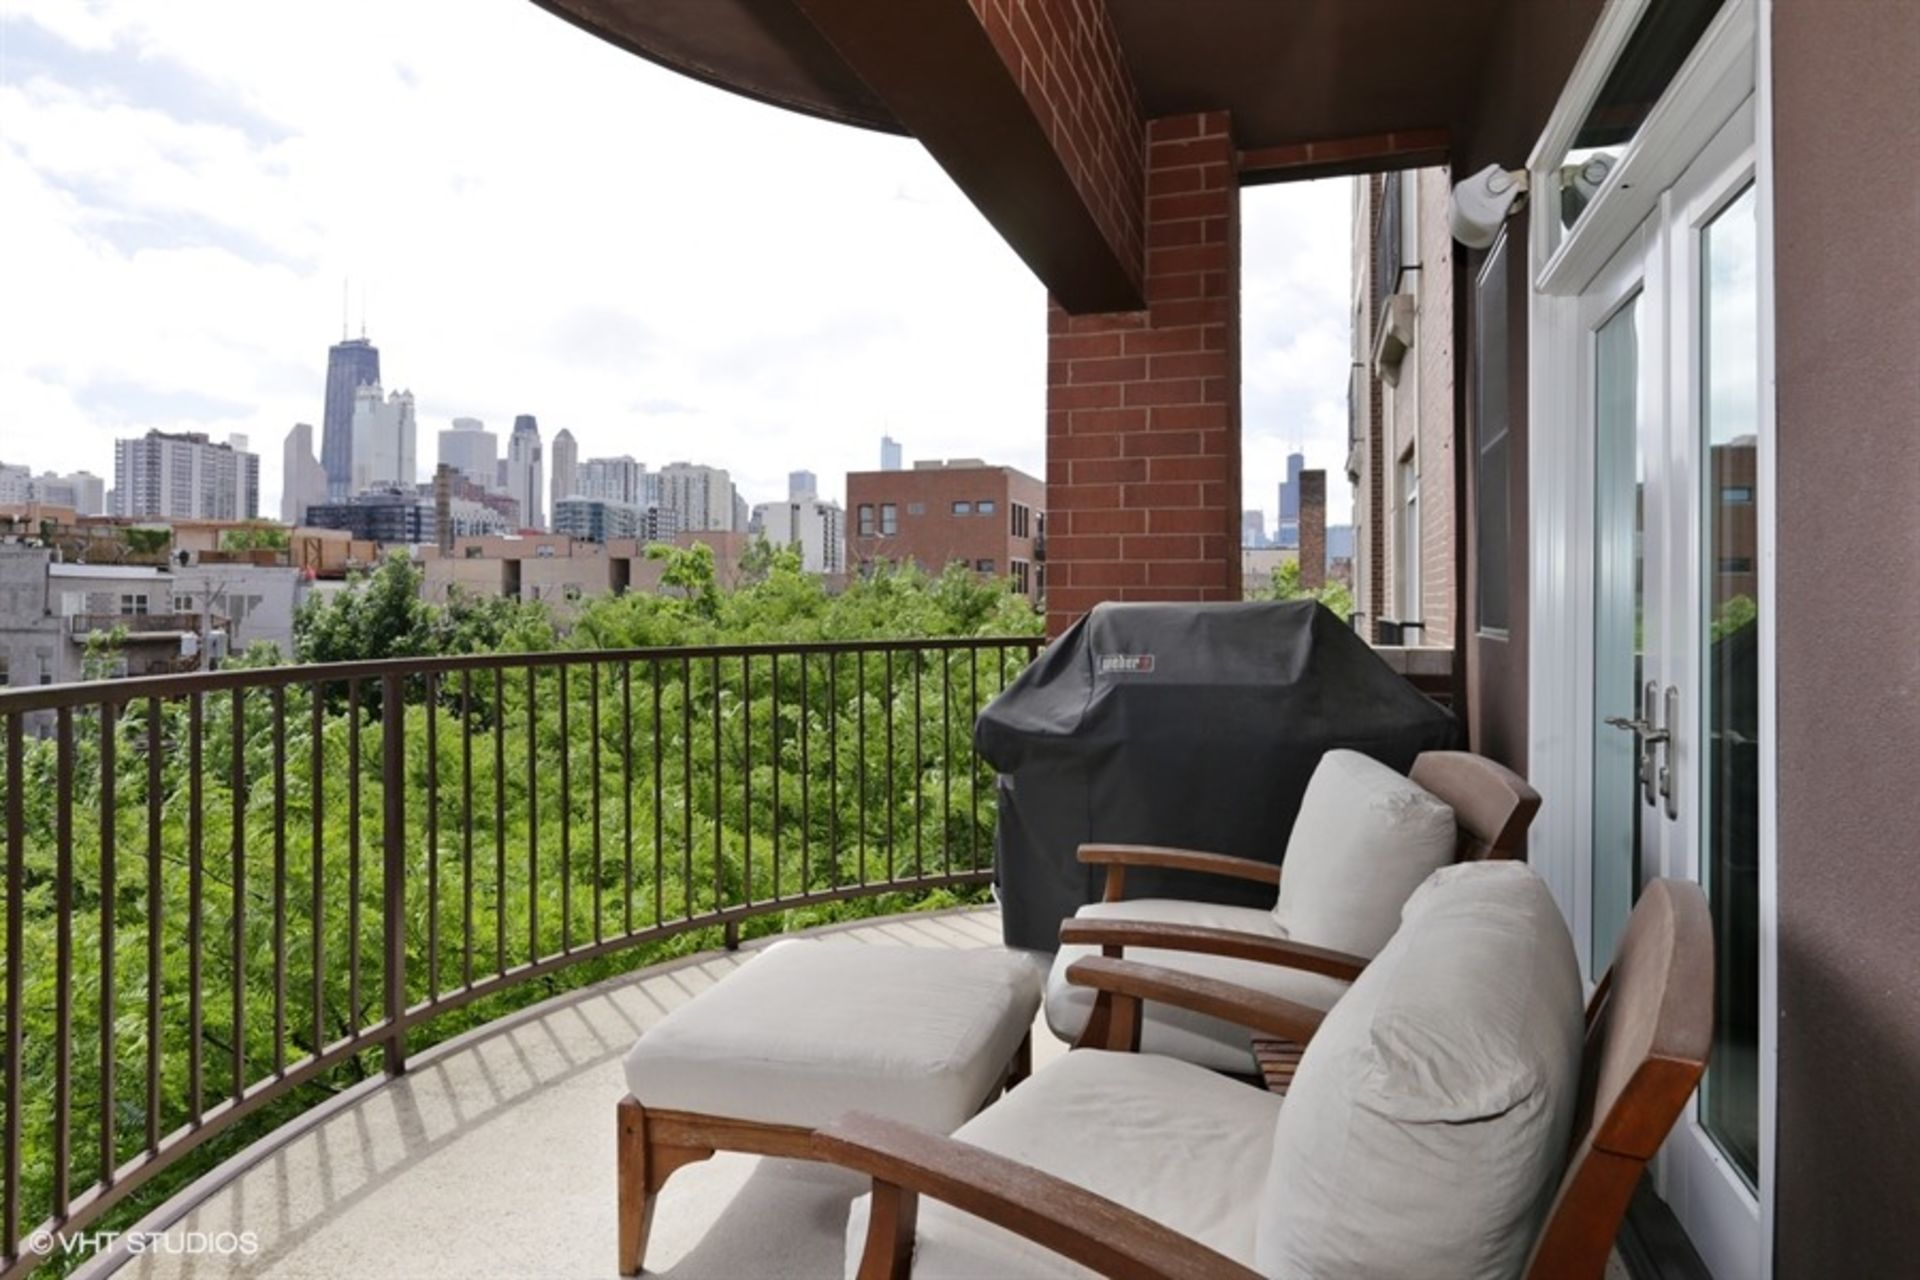 Condo with Skyline Views for Sale in Old Town Chicago